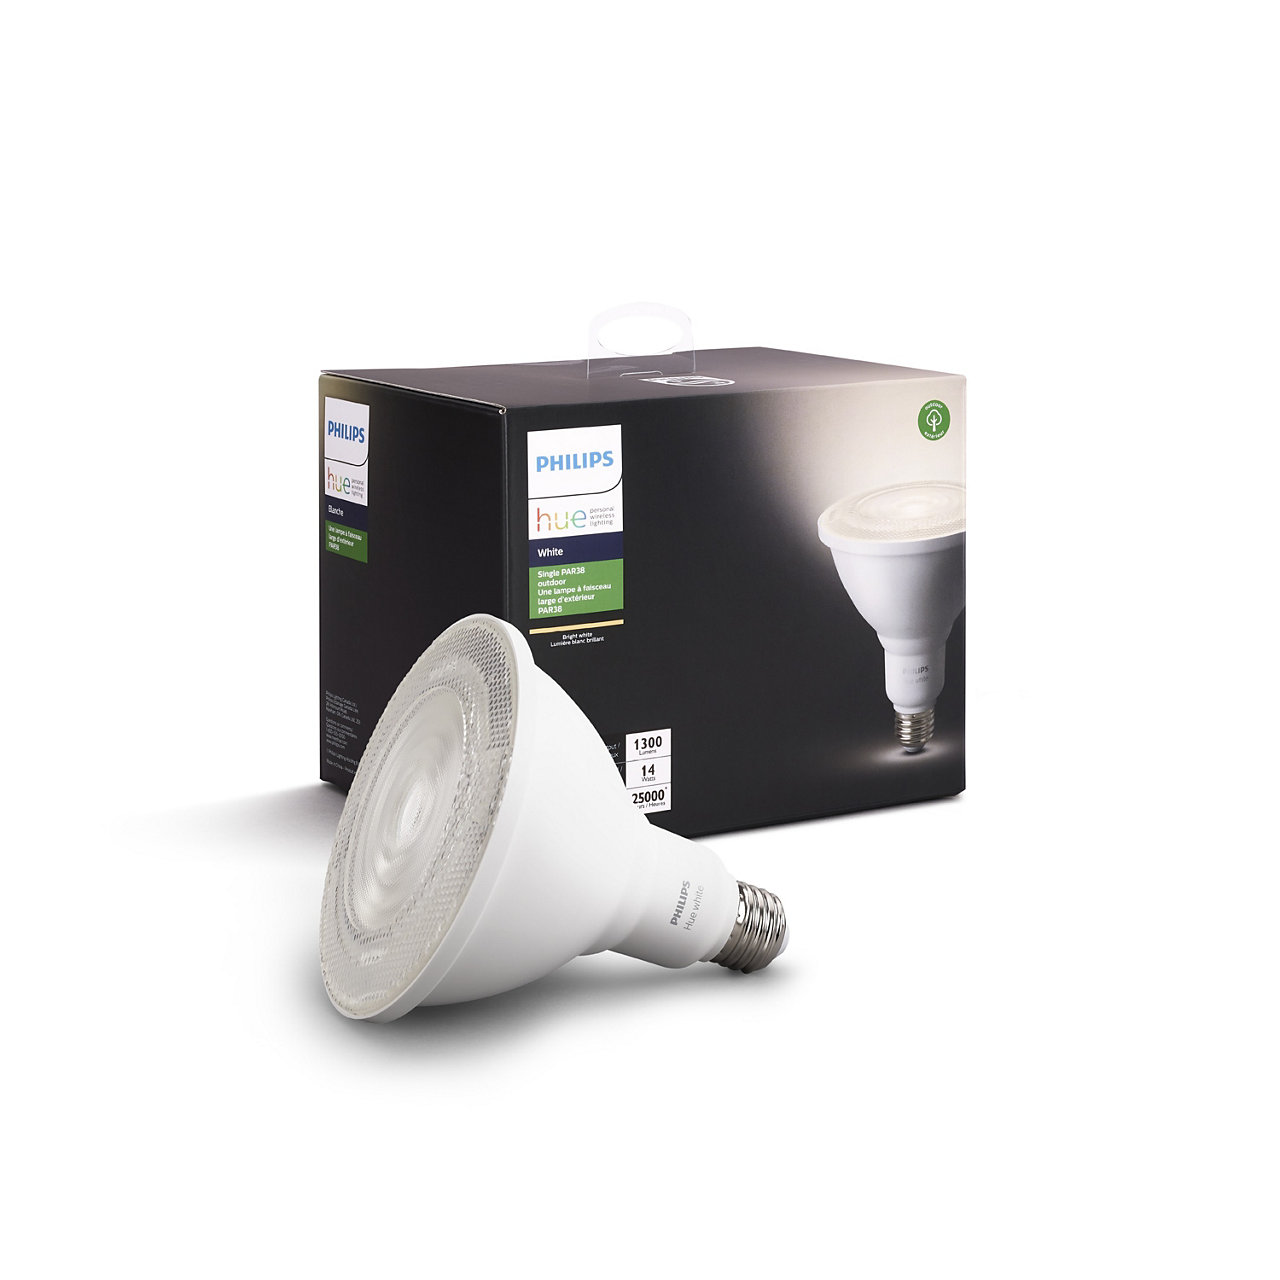 Outdoor Hue White PAR-38 Smart LED Bulb